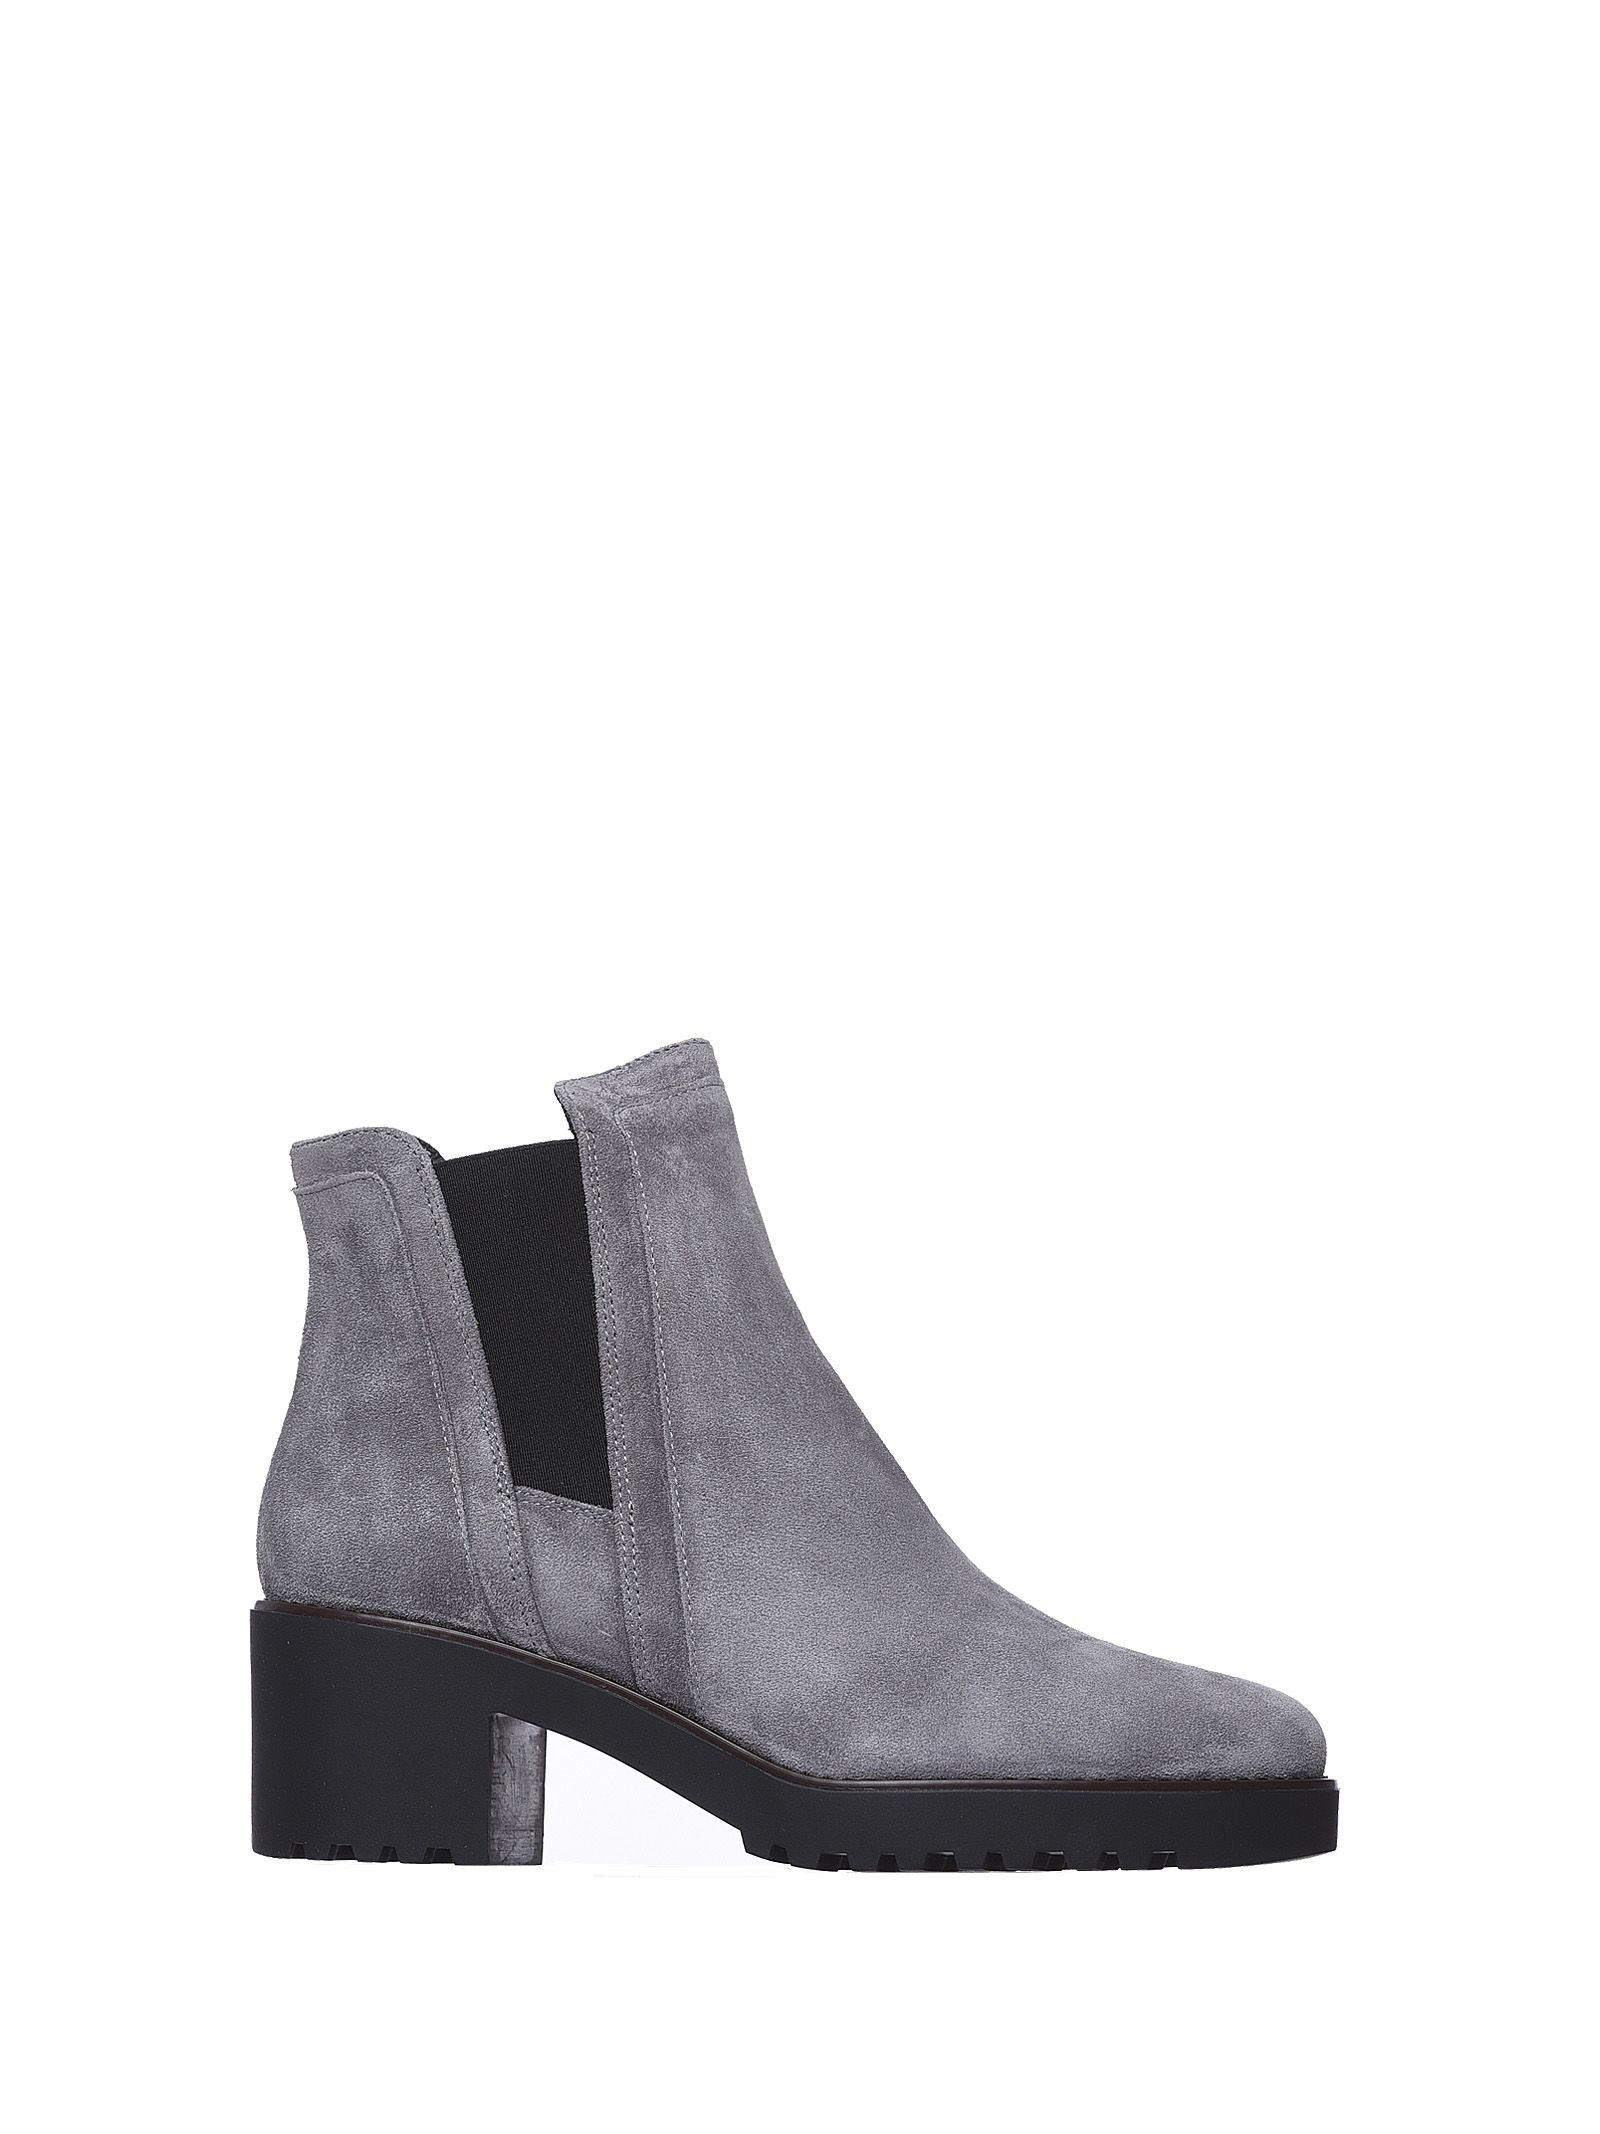 Hogan H277 Ankle Boots Grey